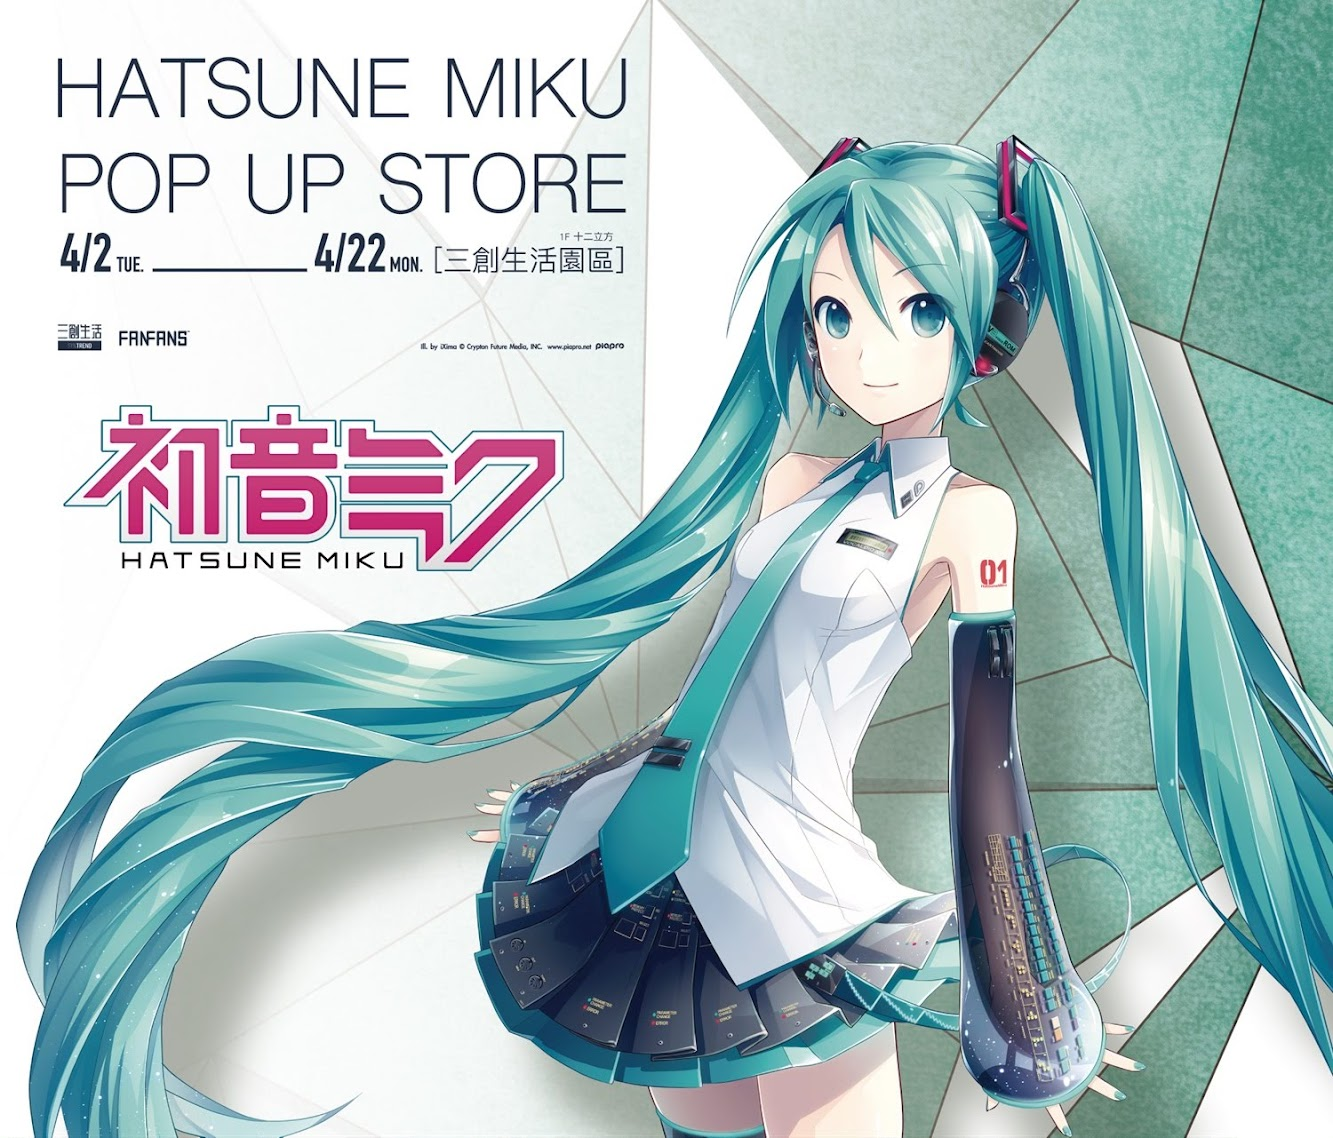 [迷迷動漫] 初音未來快閃店「HATSUNE MIKU POP UP STORE」將於